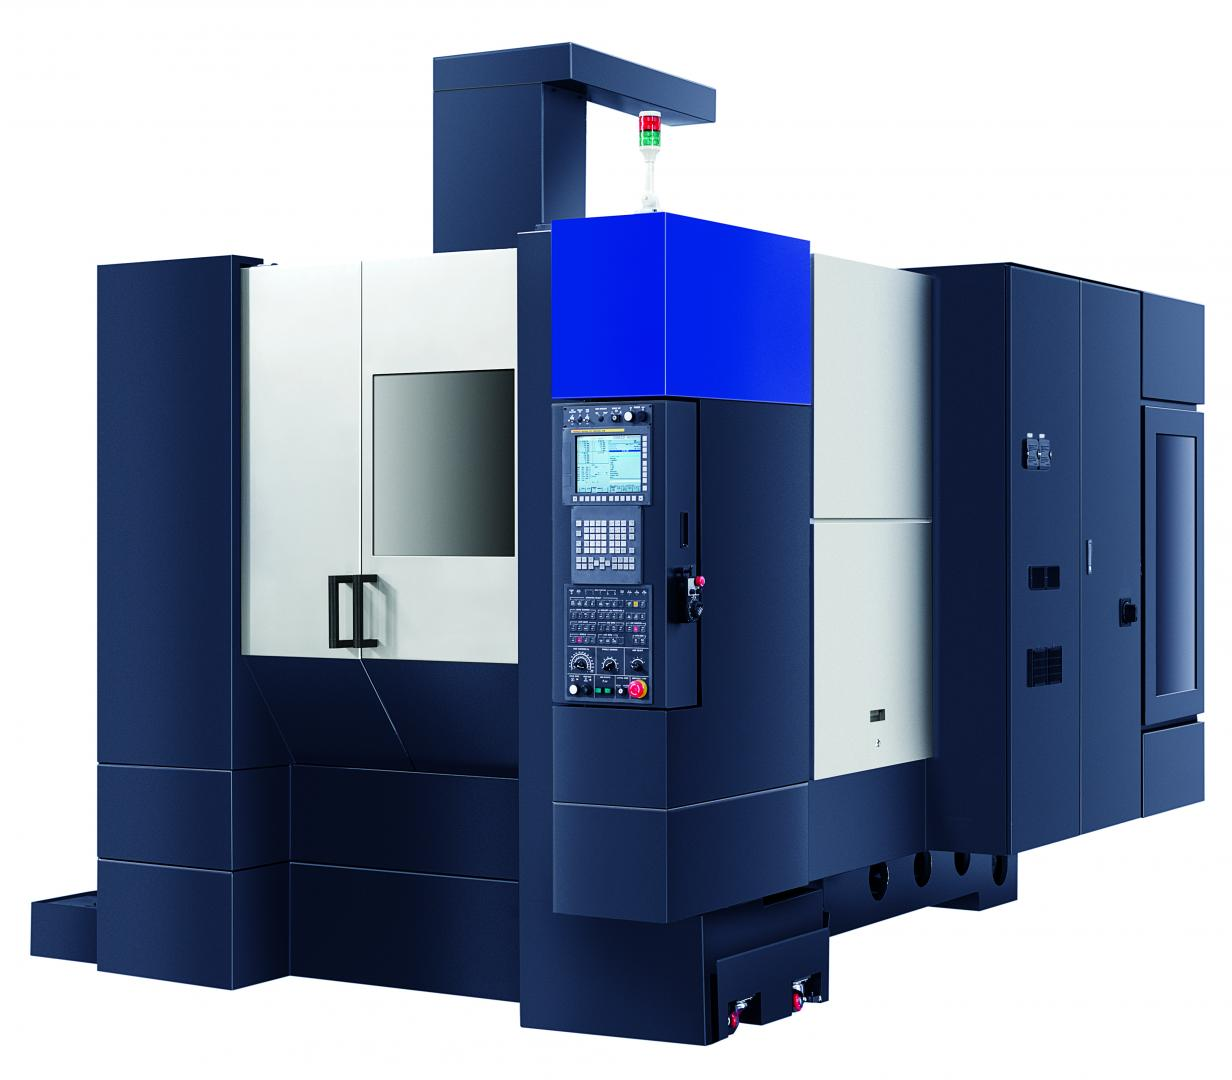 M2-5AX - 5-axis machining centre with Ø500 mm rotary table